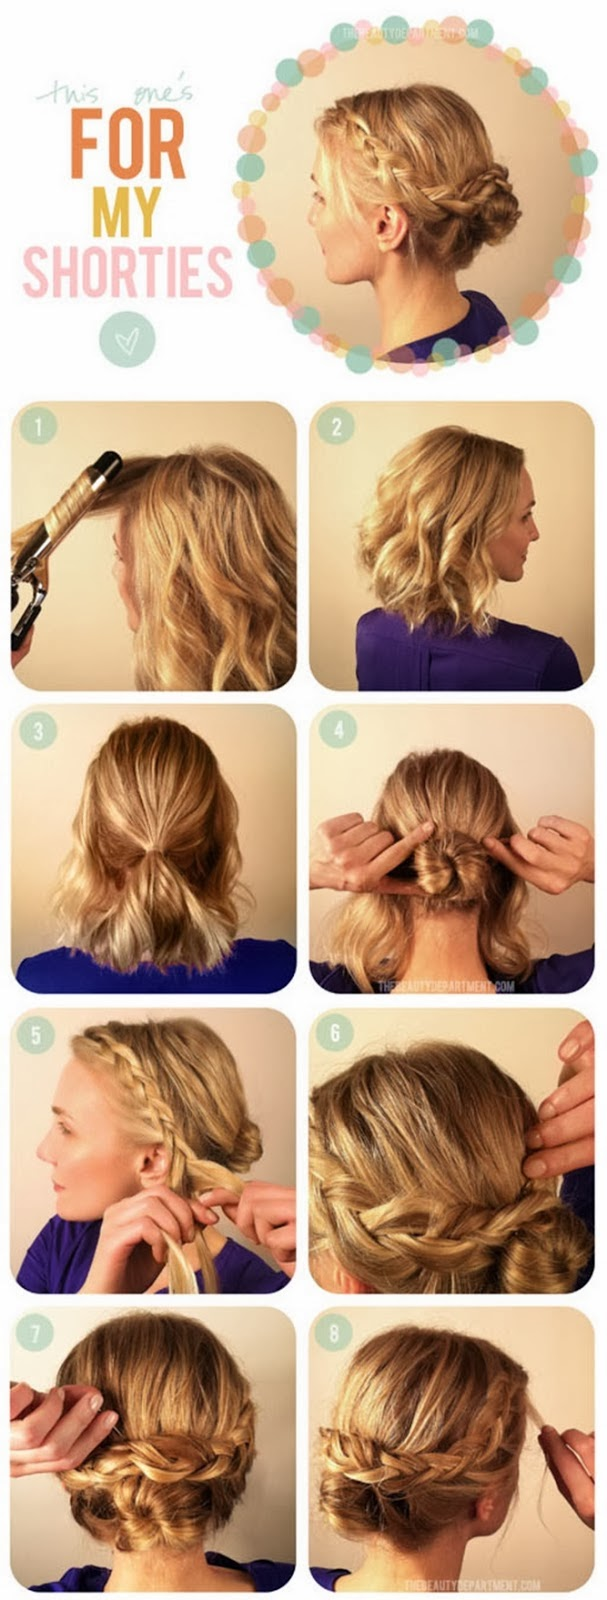 Braided Hairstyle Tutorial for Women